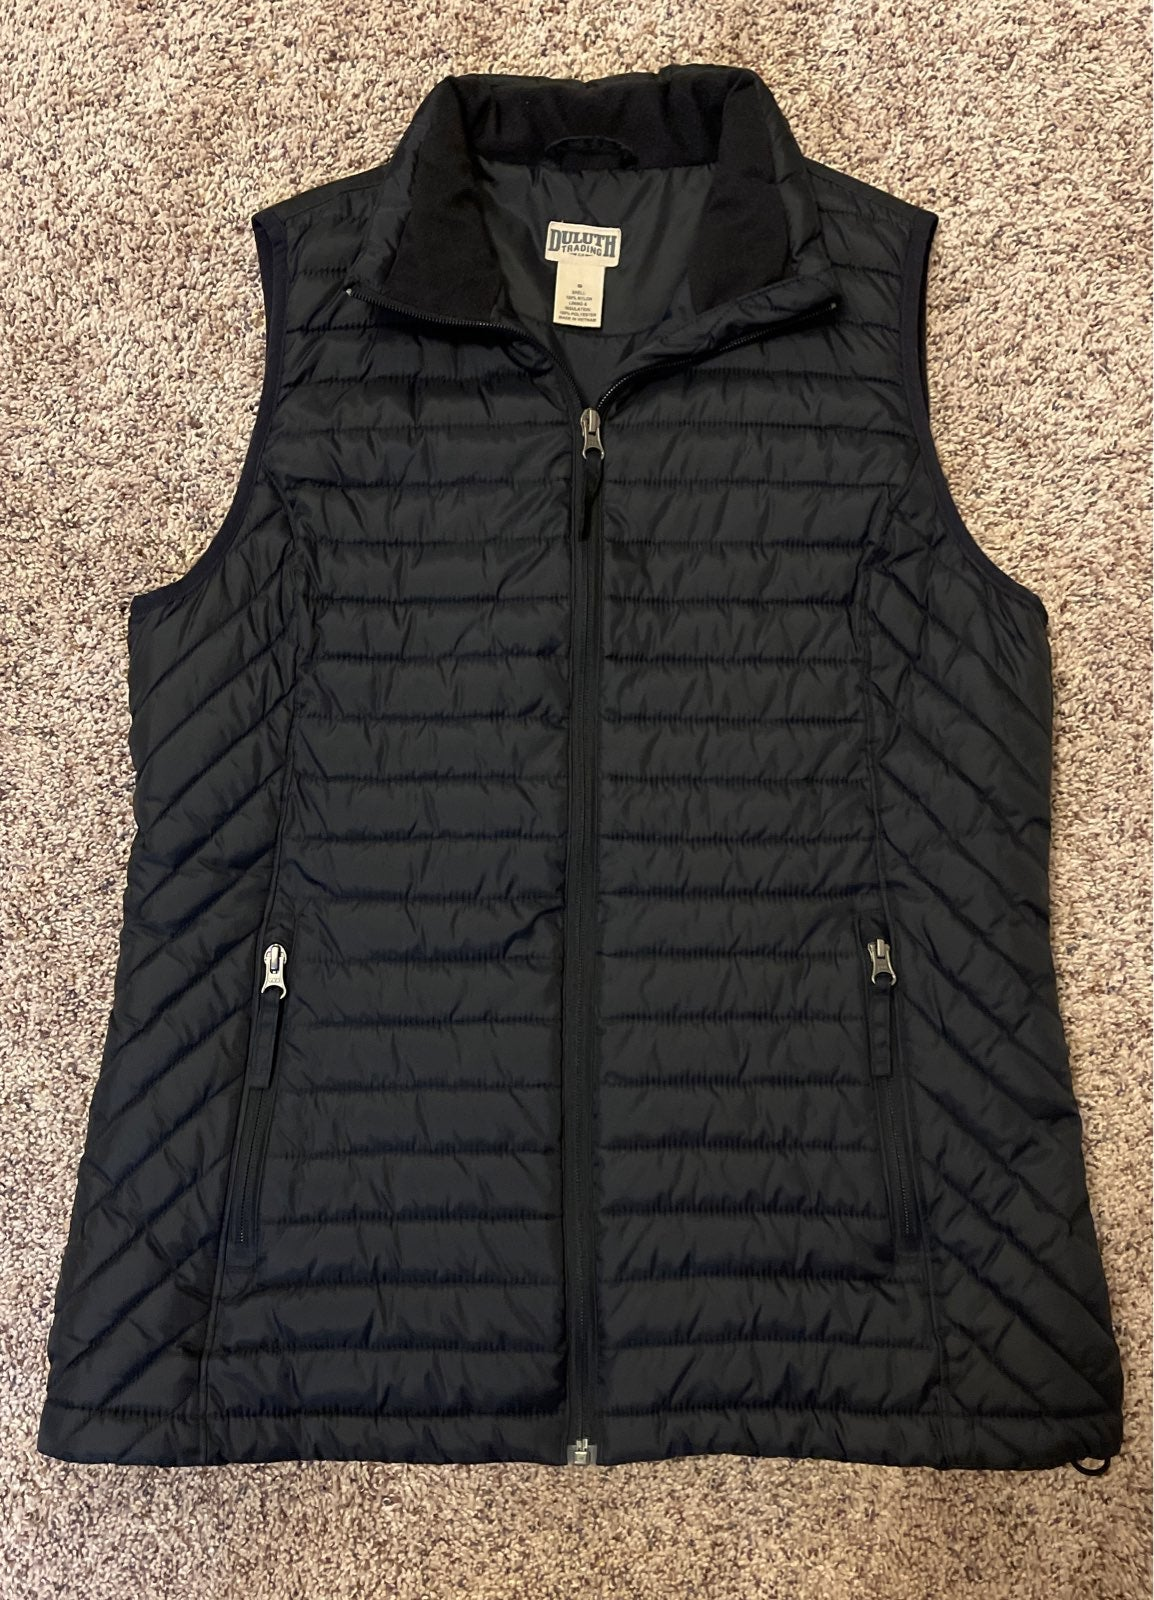 Duluth Trading Puffer Vest